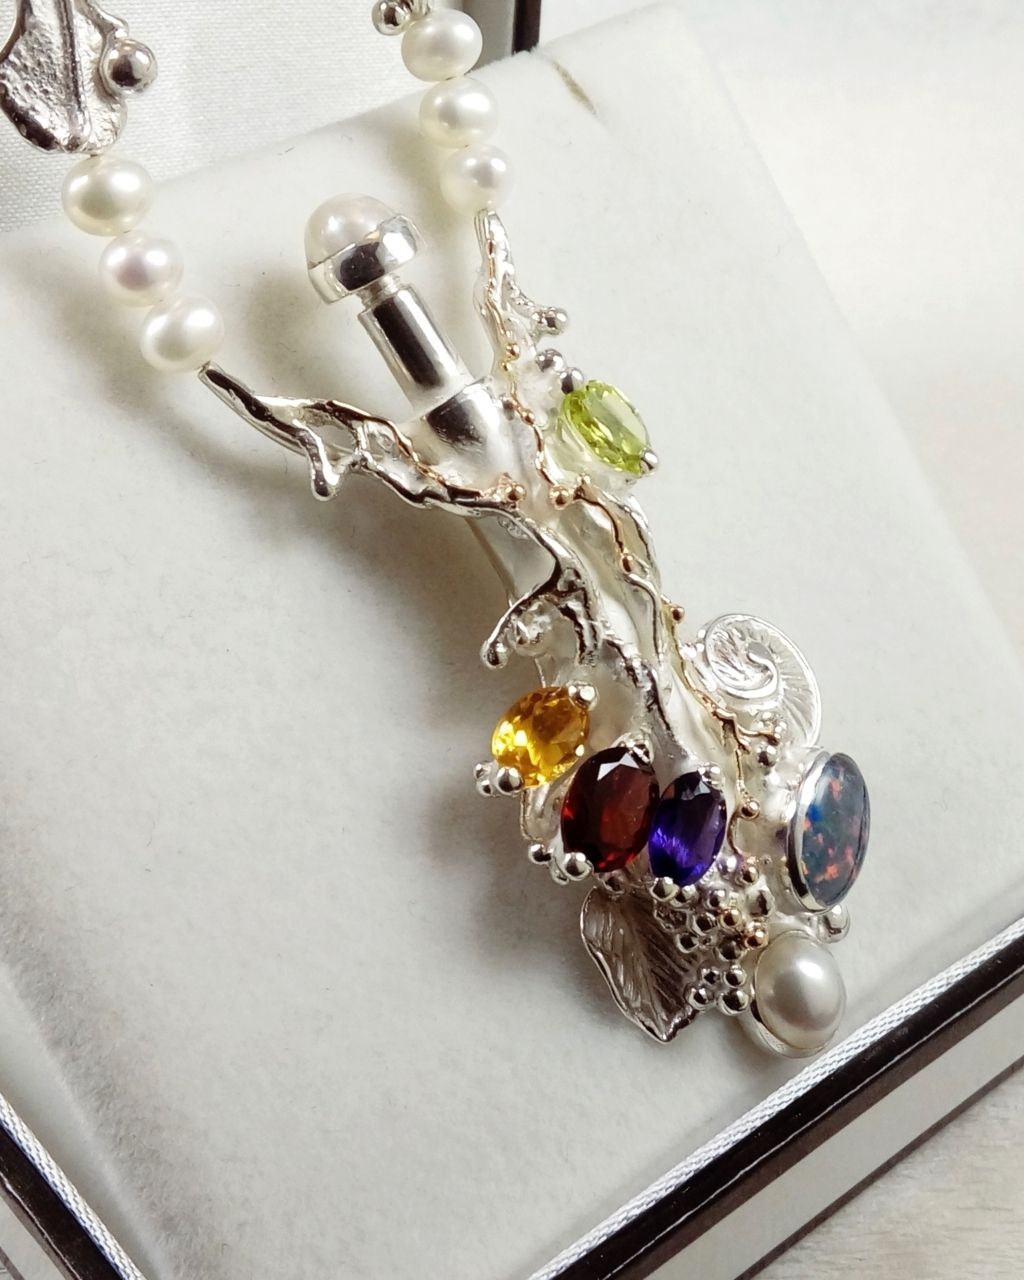 gregory pyra piro perfume bottle pendant #4401, jewellery delivered to your home in Ireland, jewellery delivered to your home in Cork, jewellery delivered to your home in Dublin, jewellery with home delivery in Galway, jewellery with home delivery in Dublin, jewellery with home delivery in Belfast, jewellery sold in art galleries, jewellery handcrafted by artisan, jewellery handcrafted from gold and silver, perfume bottle made from silver and gold, perfume bottle with pearls, perfume bottle pendant, jewellery with opal and gemstones, pendant with amethyst and garnet, pendant with citrine and garnet, necklace with pearls and faceted gemstones, necklace with pearls and opal